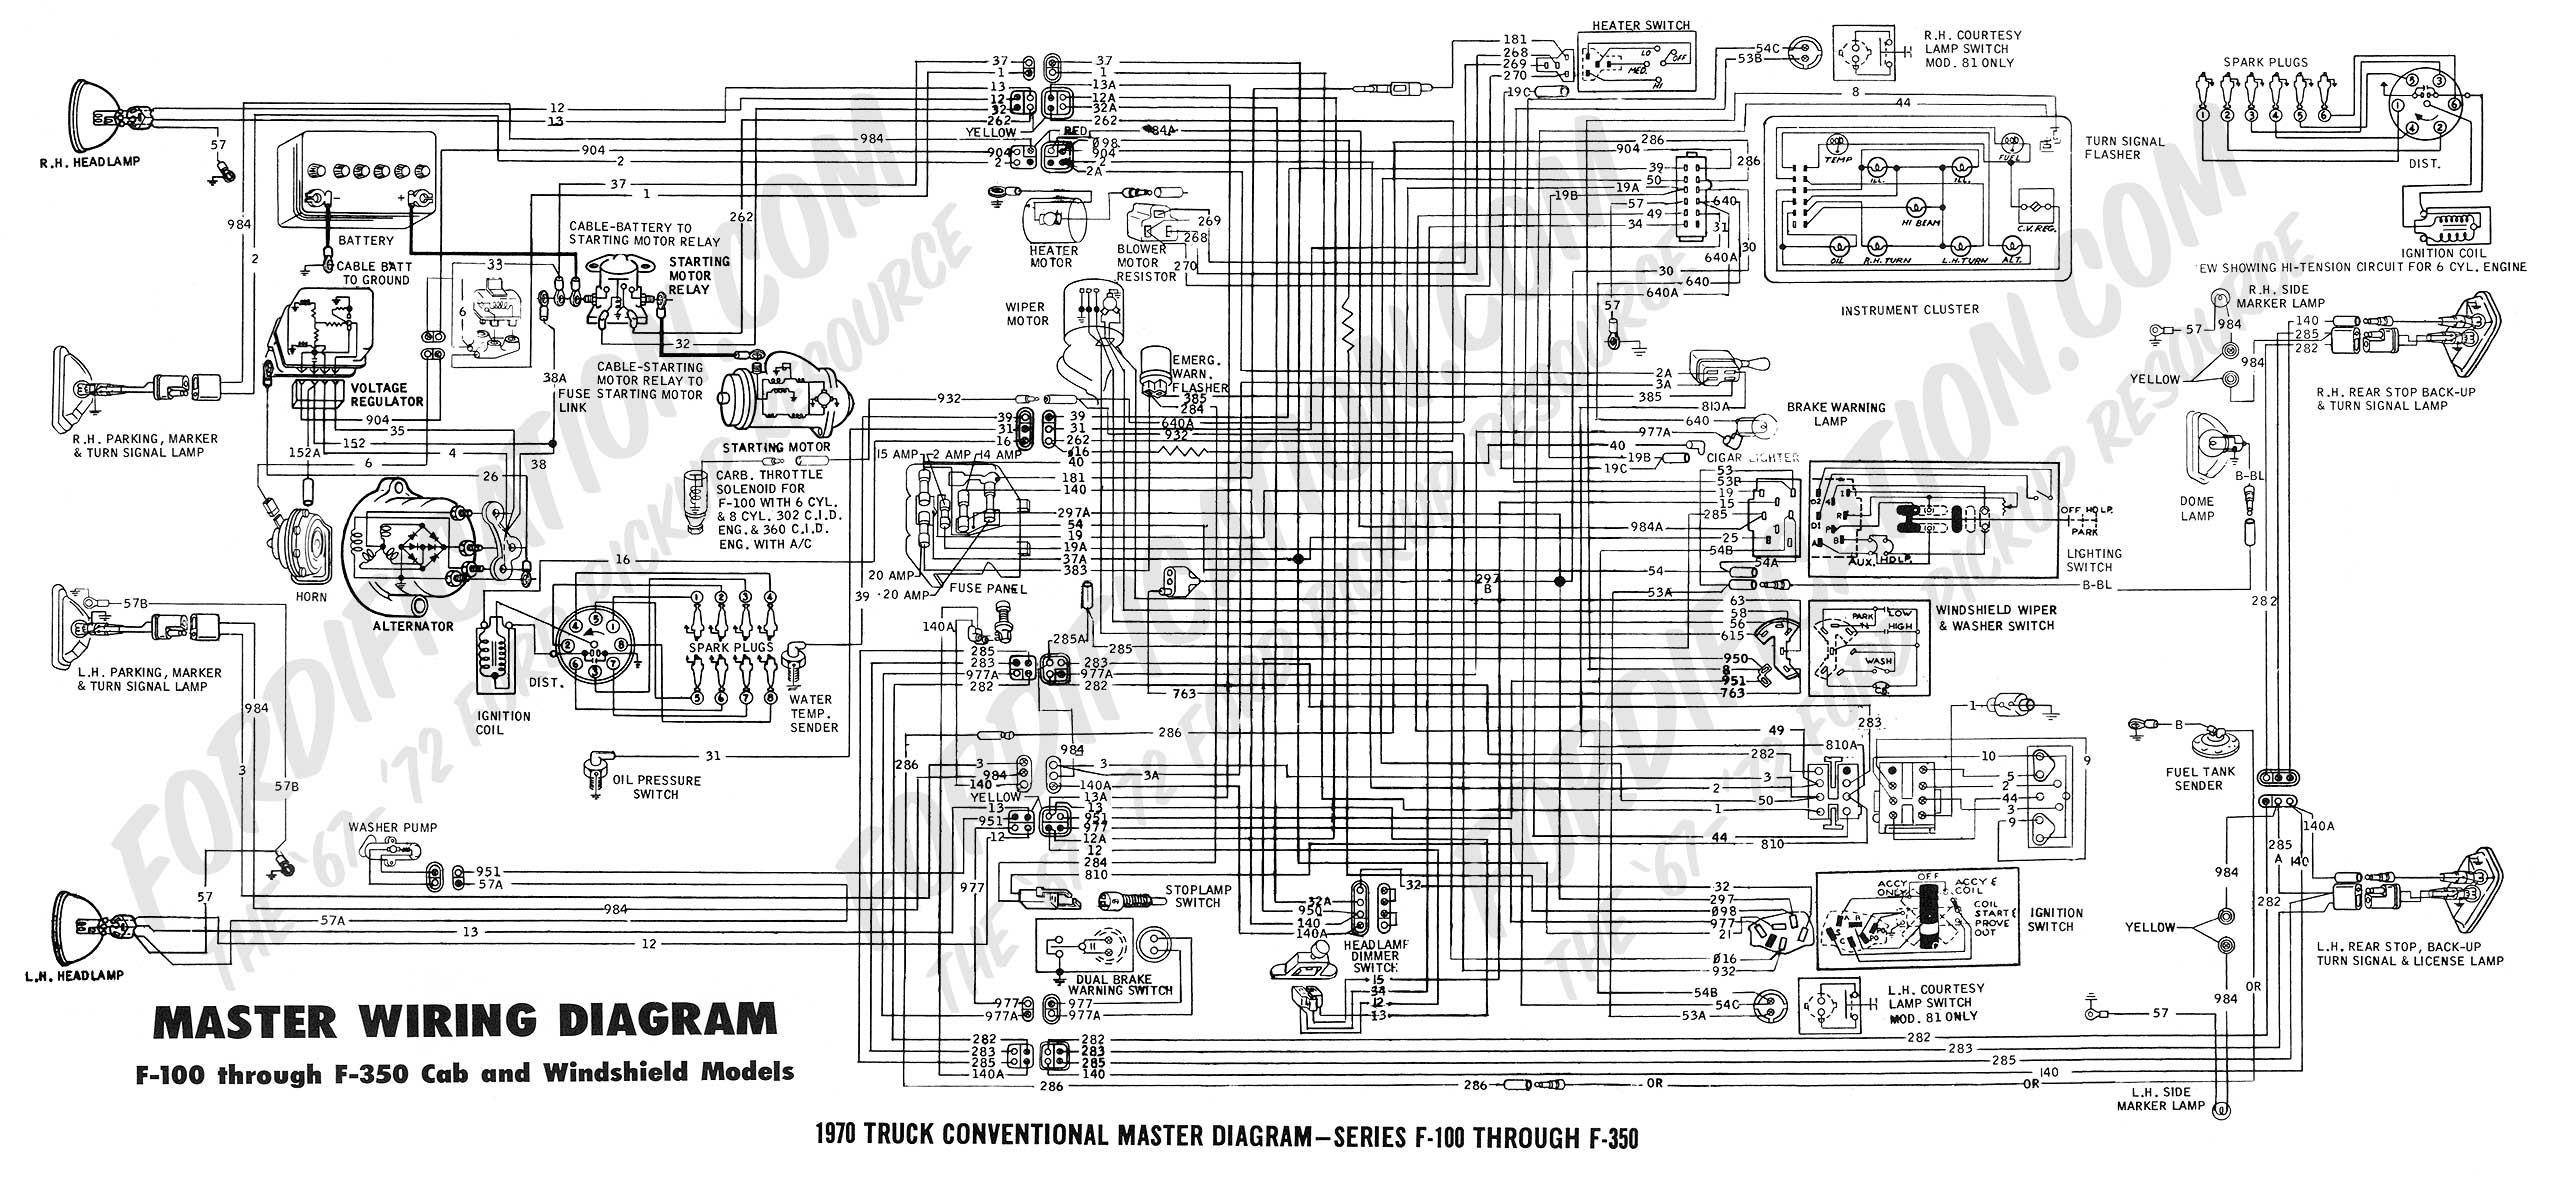 western star truck wiring diagram acm 1978 chevrolet wiring diagram truck wiring diagrams truck wiring diagrams online